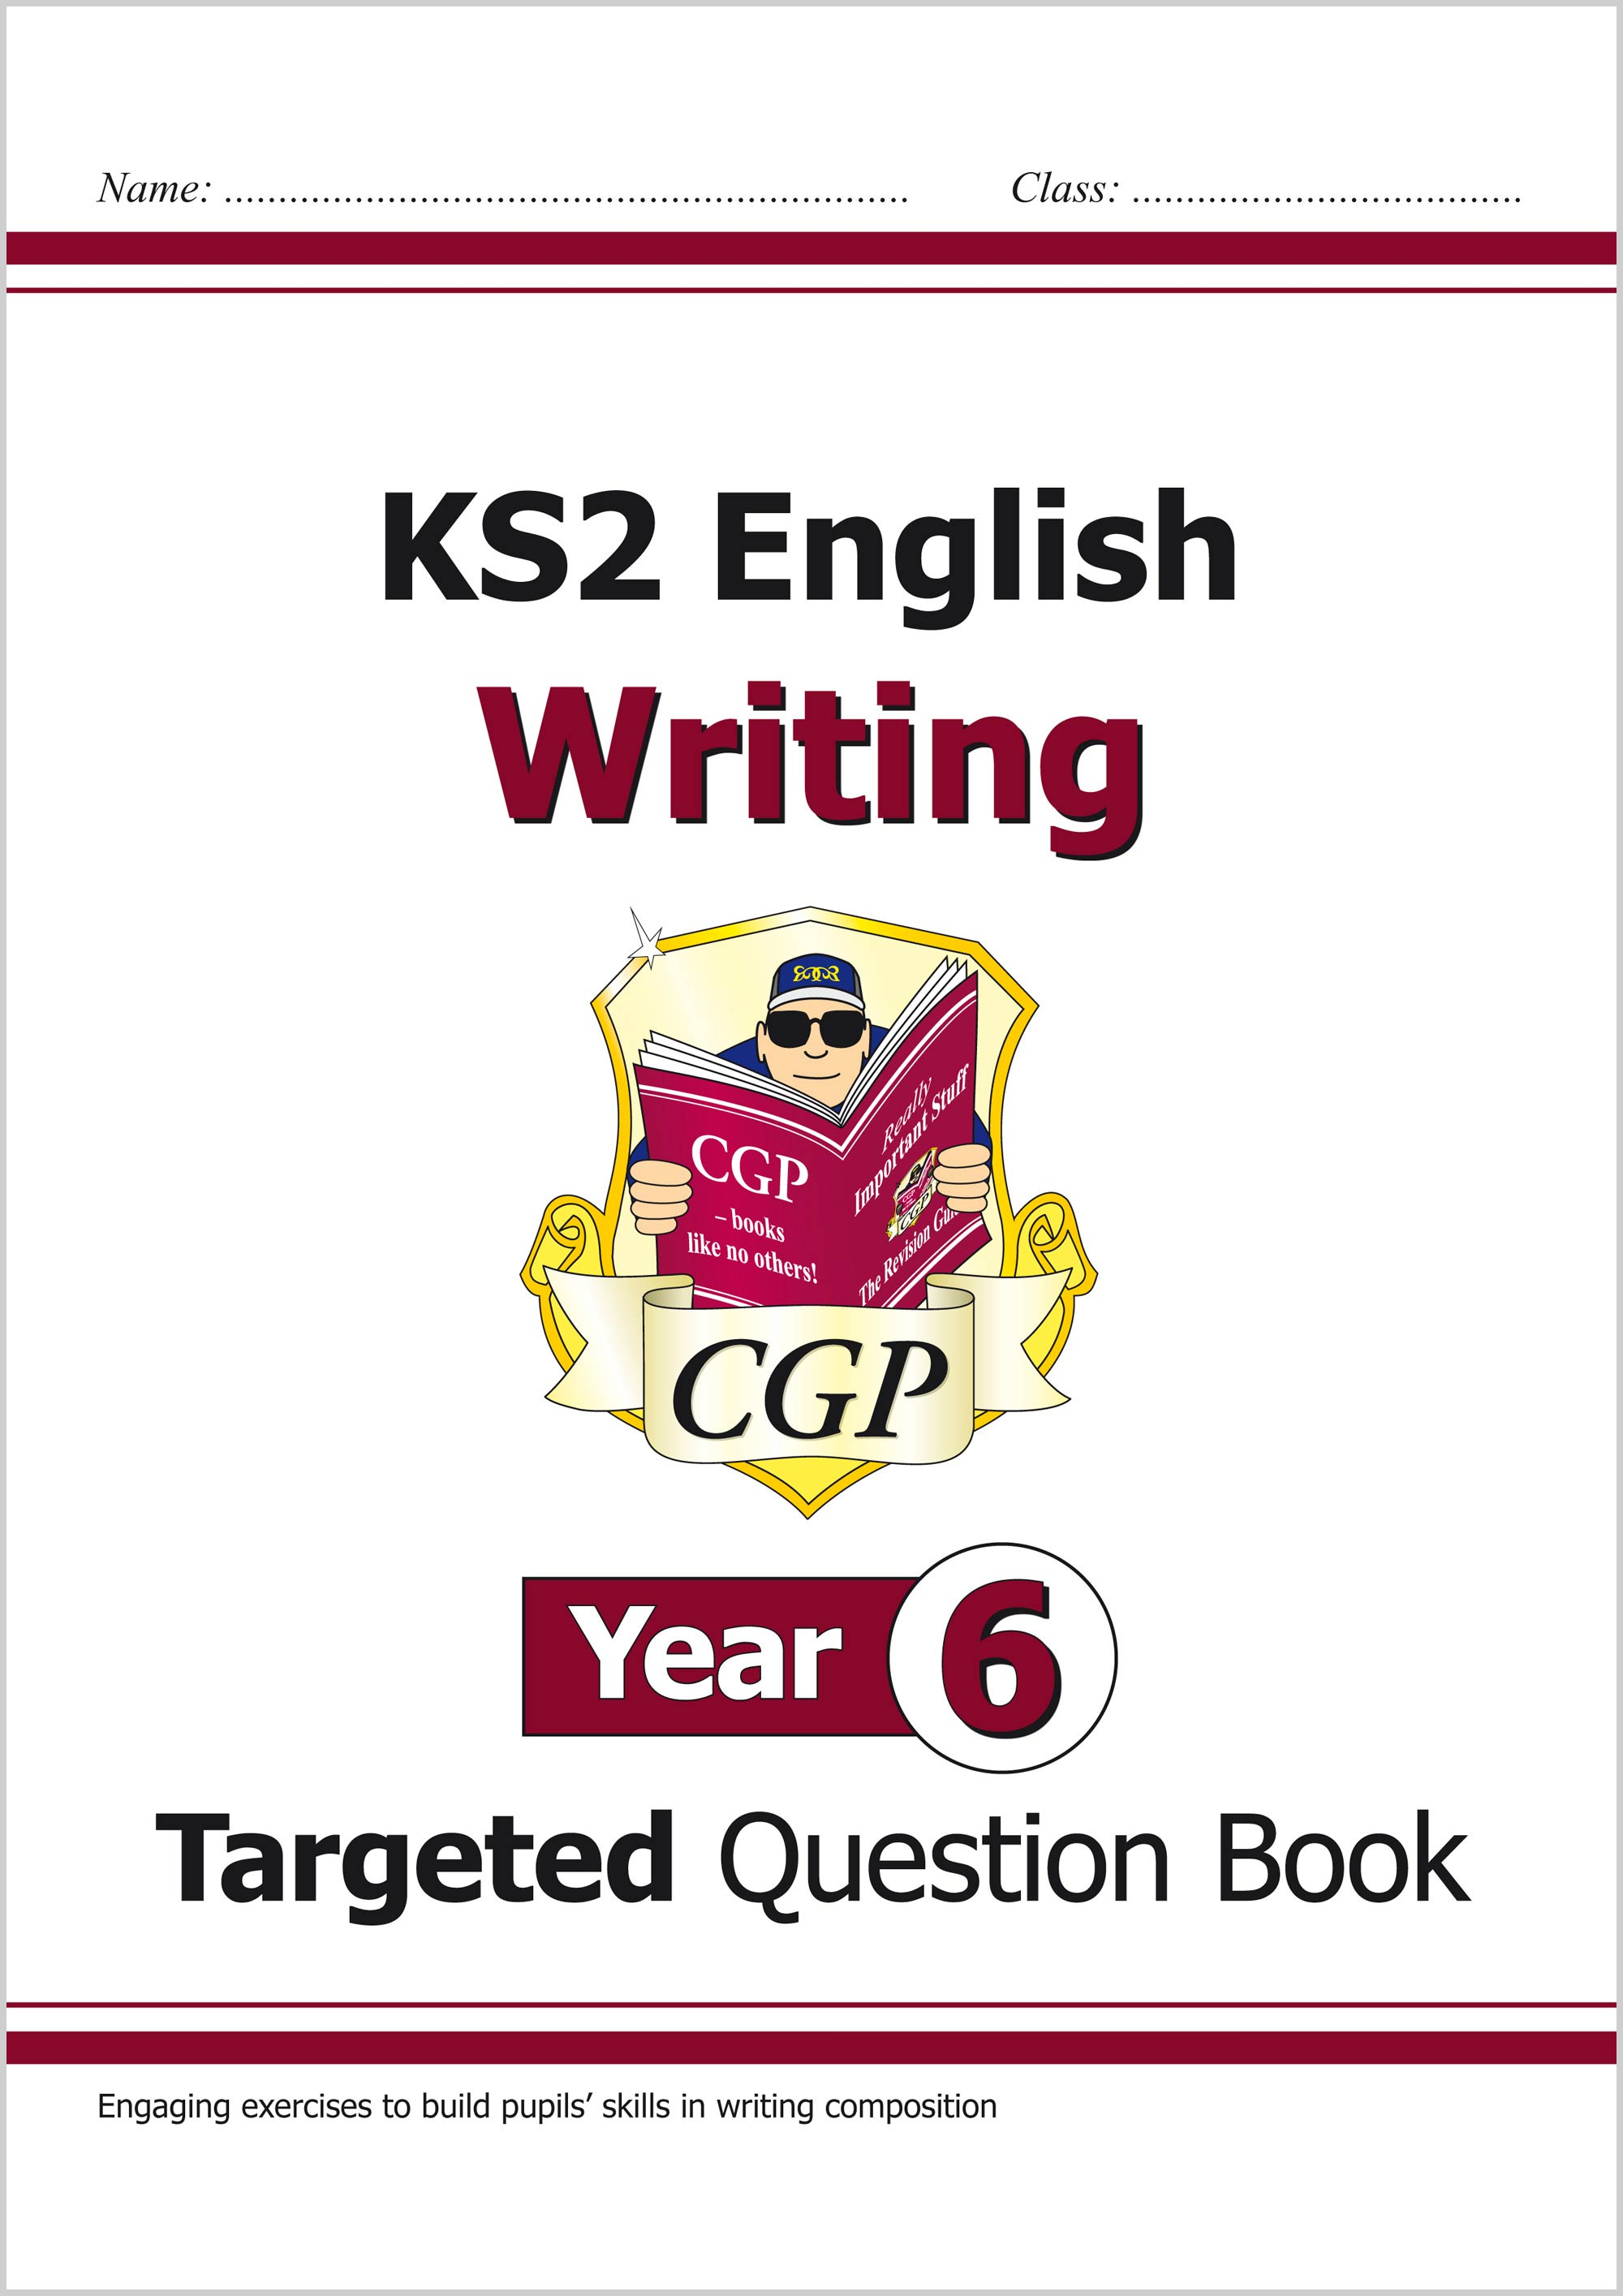 E6WW21 - New KS2 English Writing Targeted Question Book - Year 6